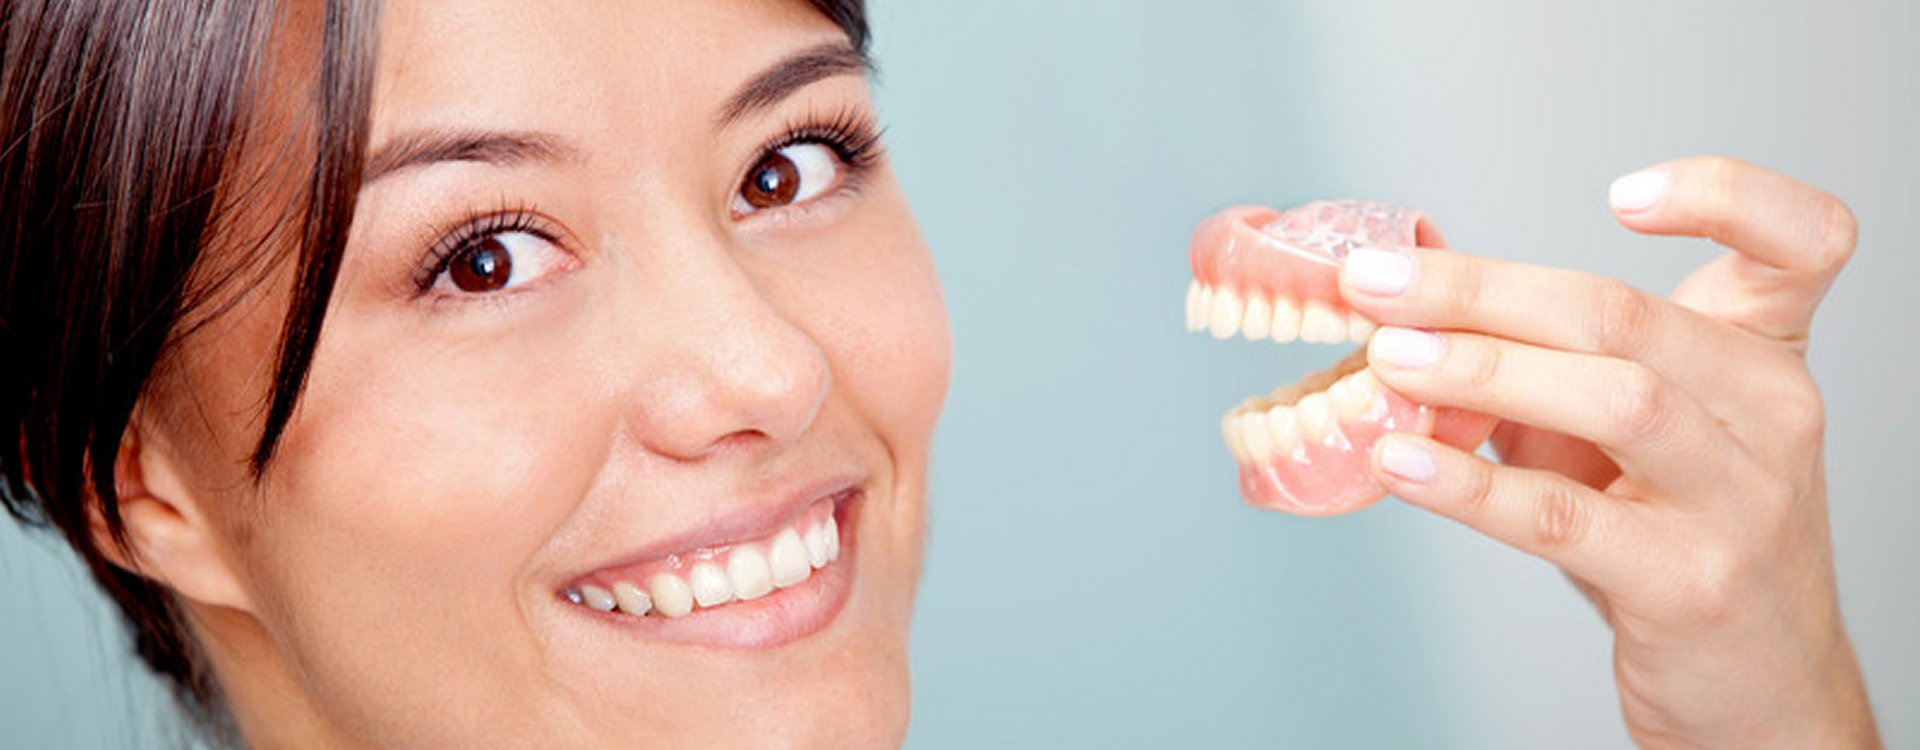 Image of woman with new dentures